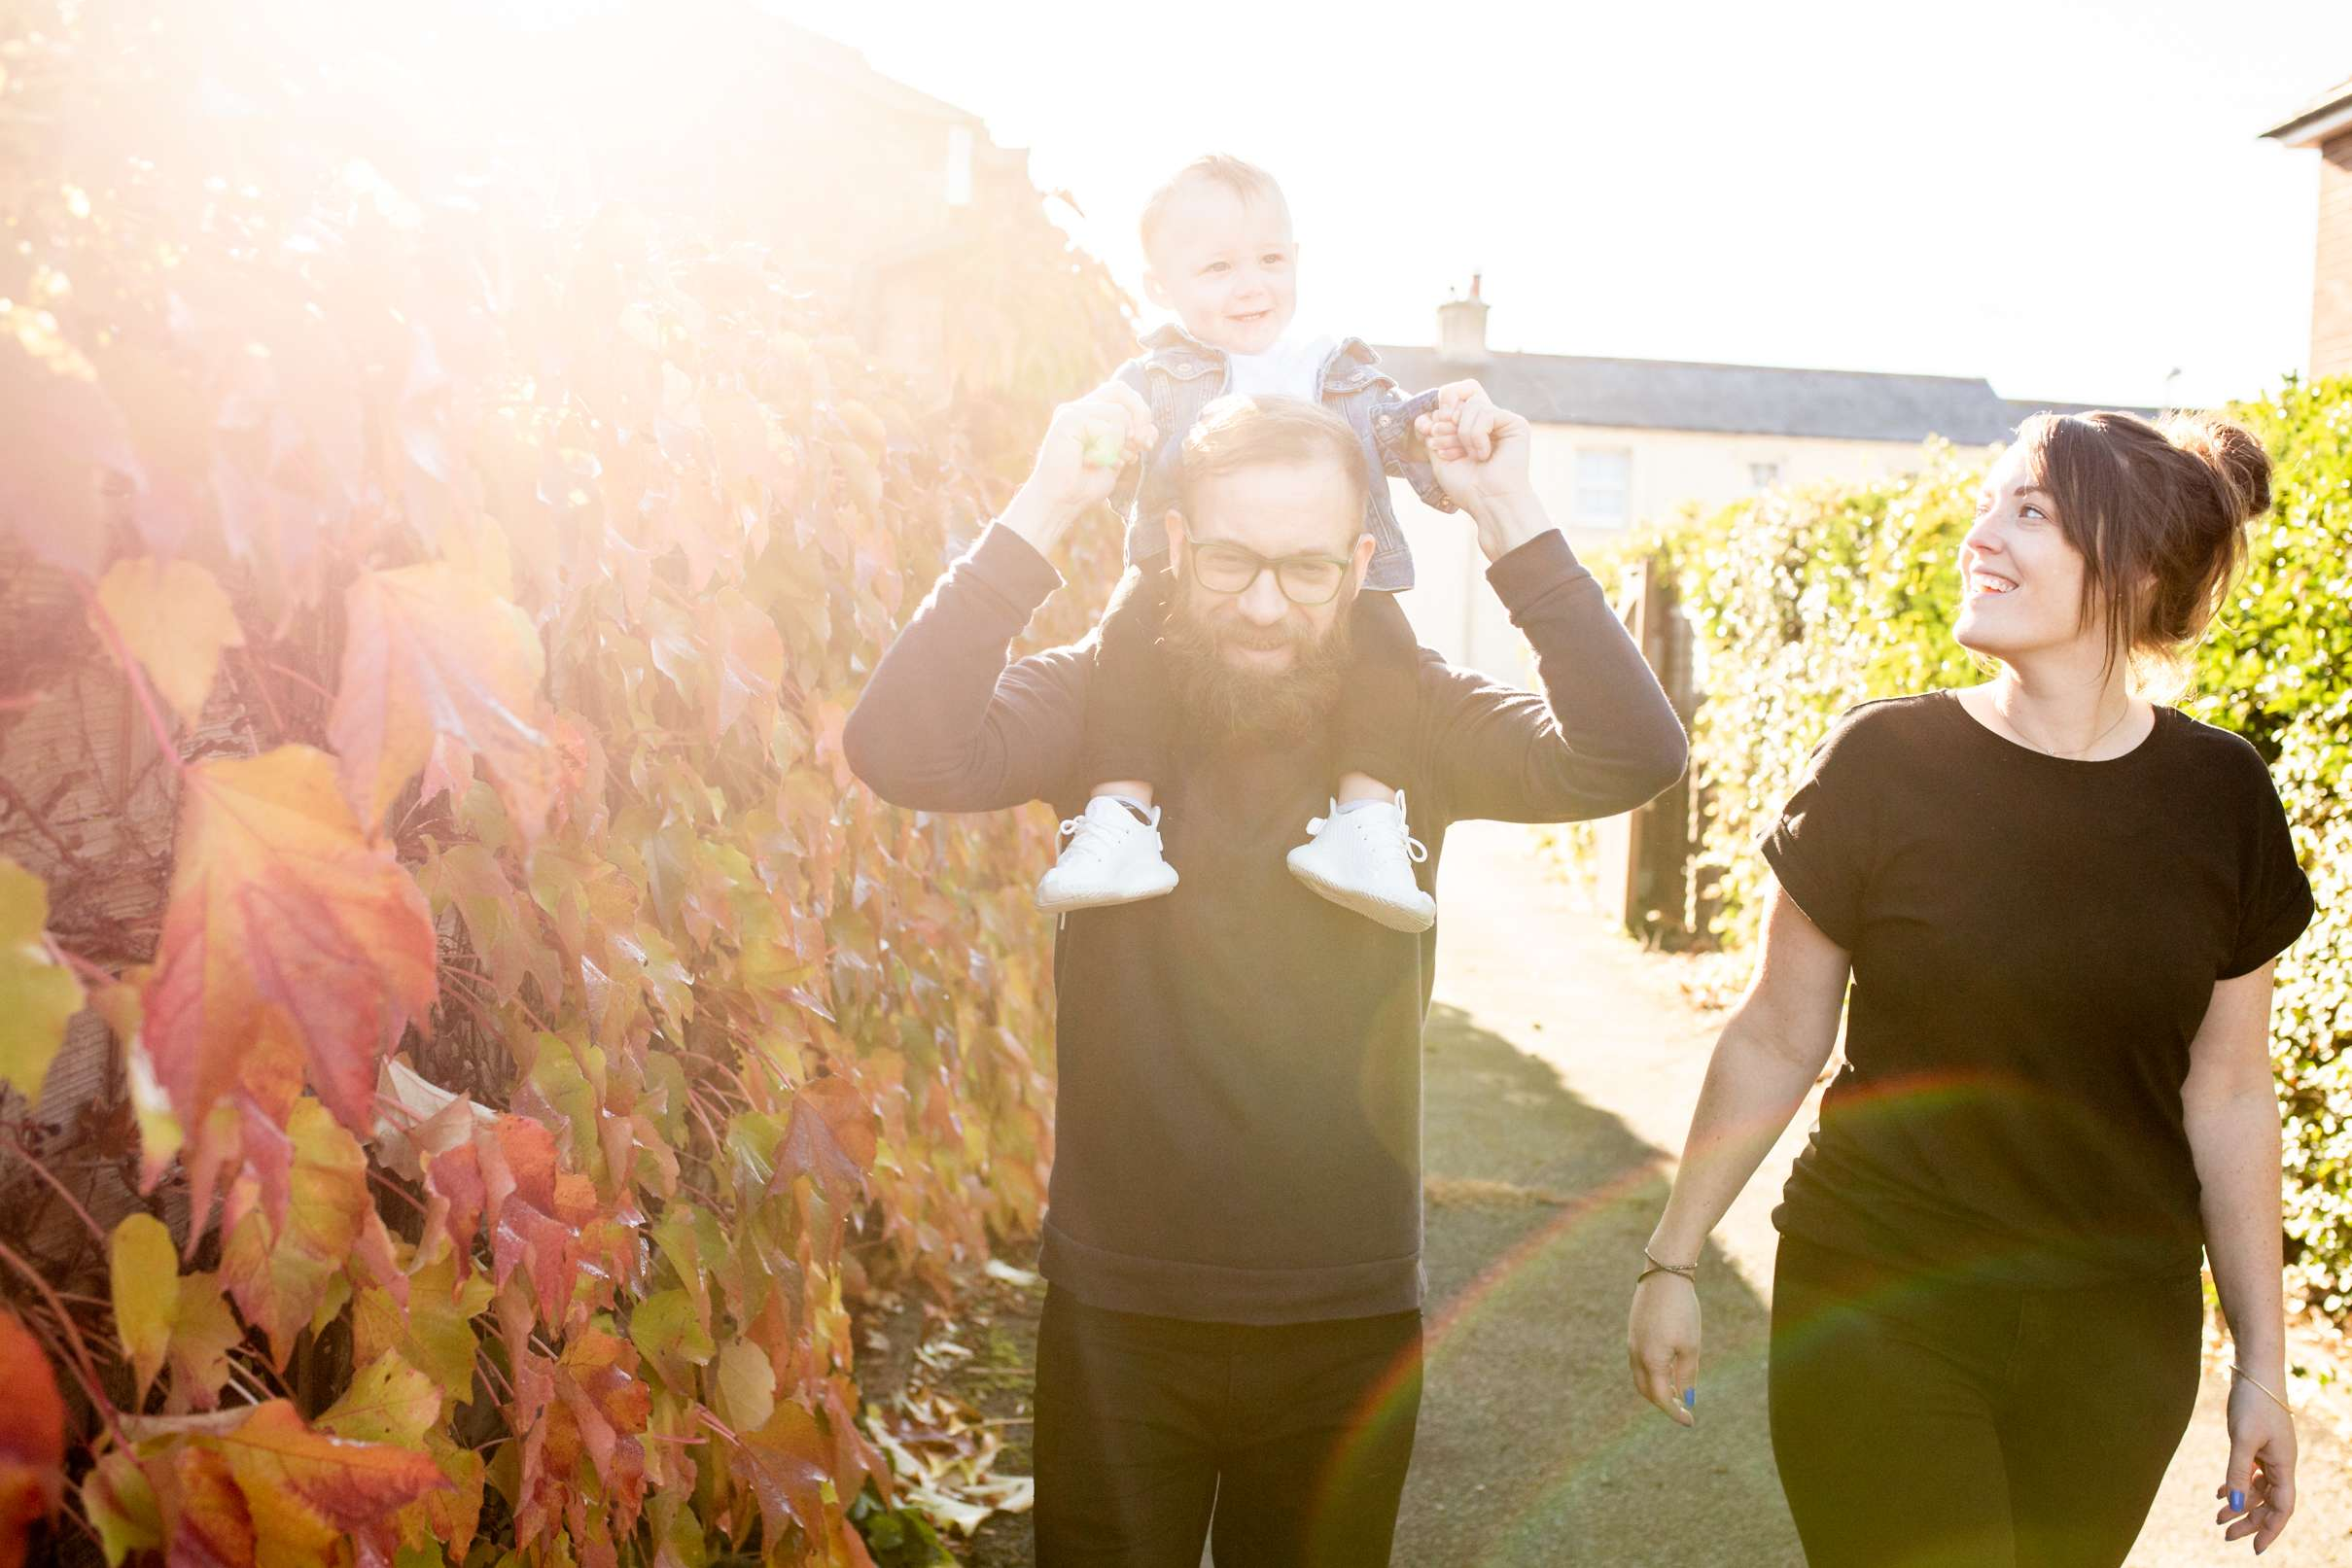 A family portrait photo of a dad with a baby on his shoulders walking with mum bu some autumn leaves